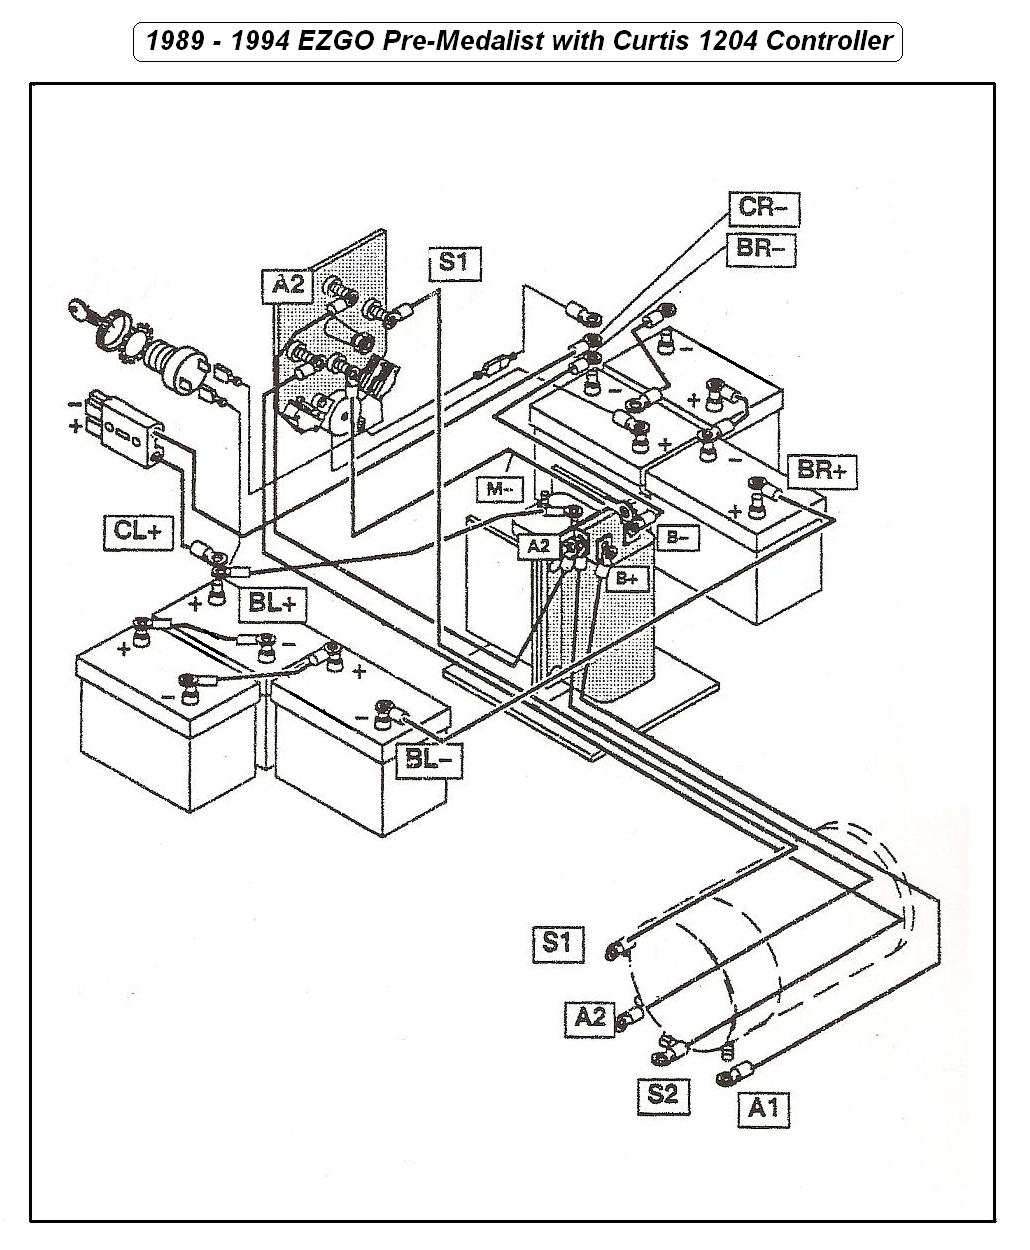 ezgo txt golf cart wiring diagram in addition 1996 ezgo golf cart